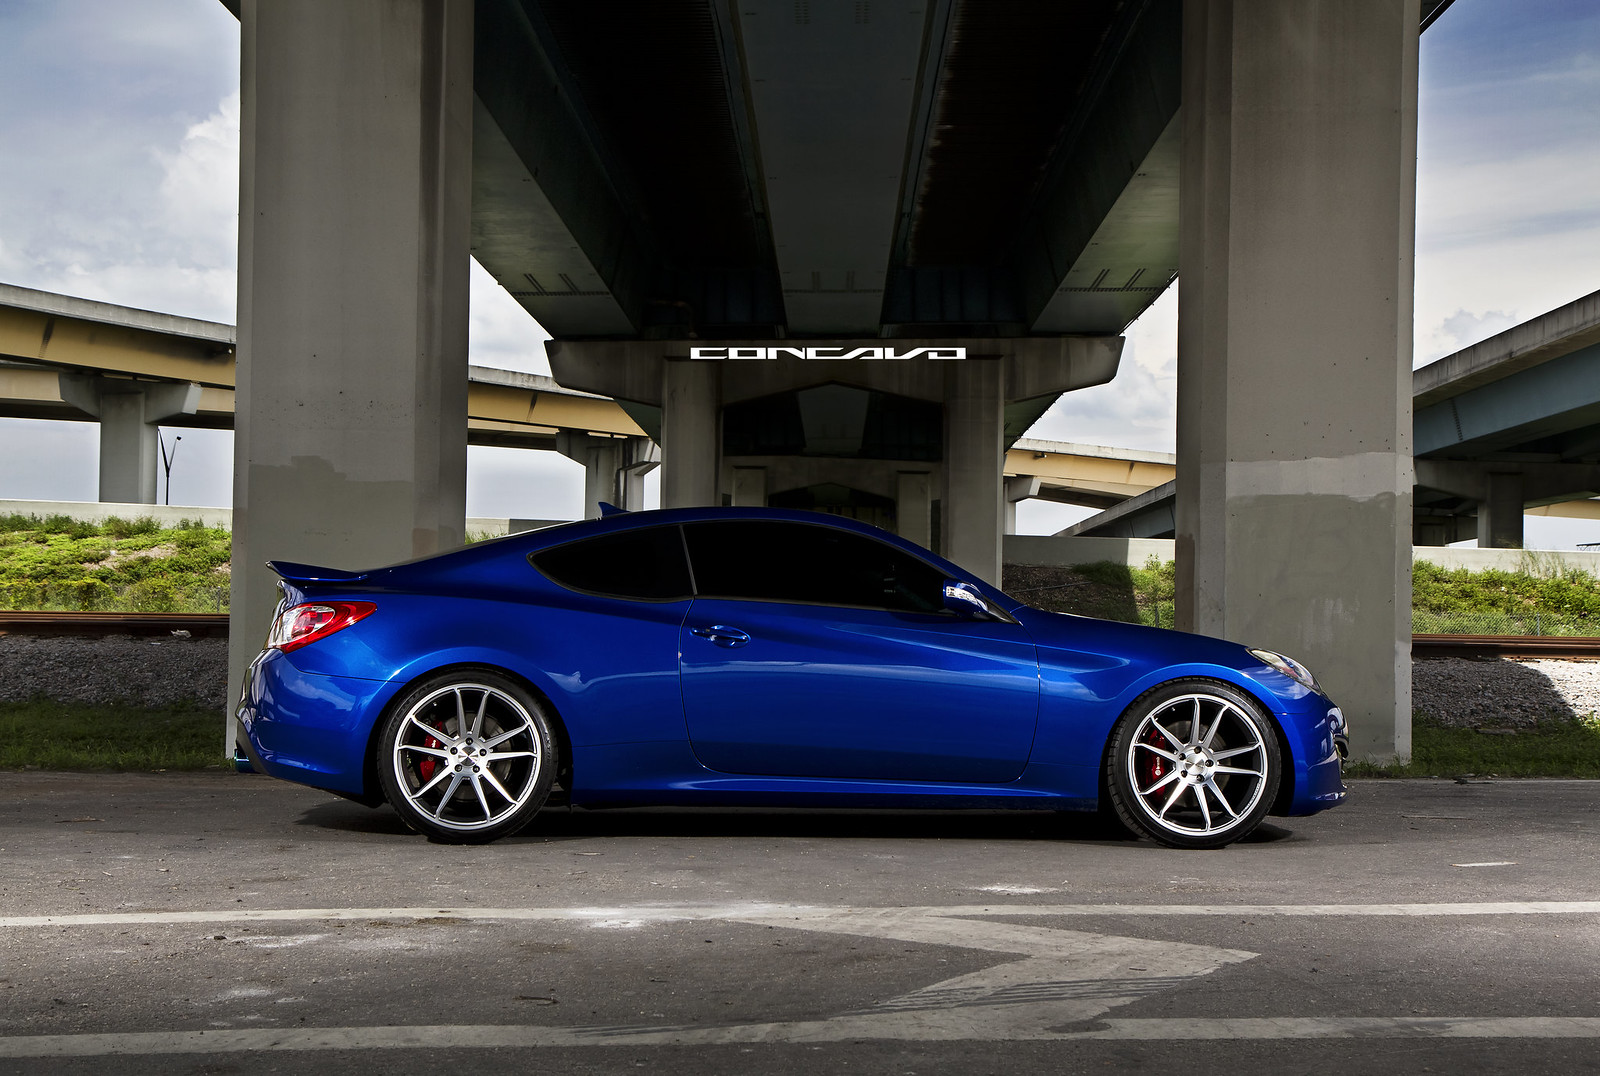 Genesis Coupe Lowered On Concavo Cw S5